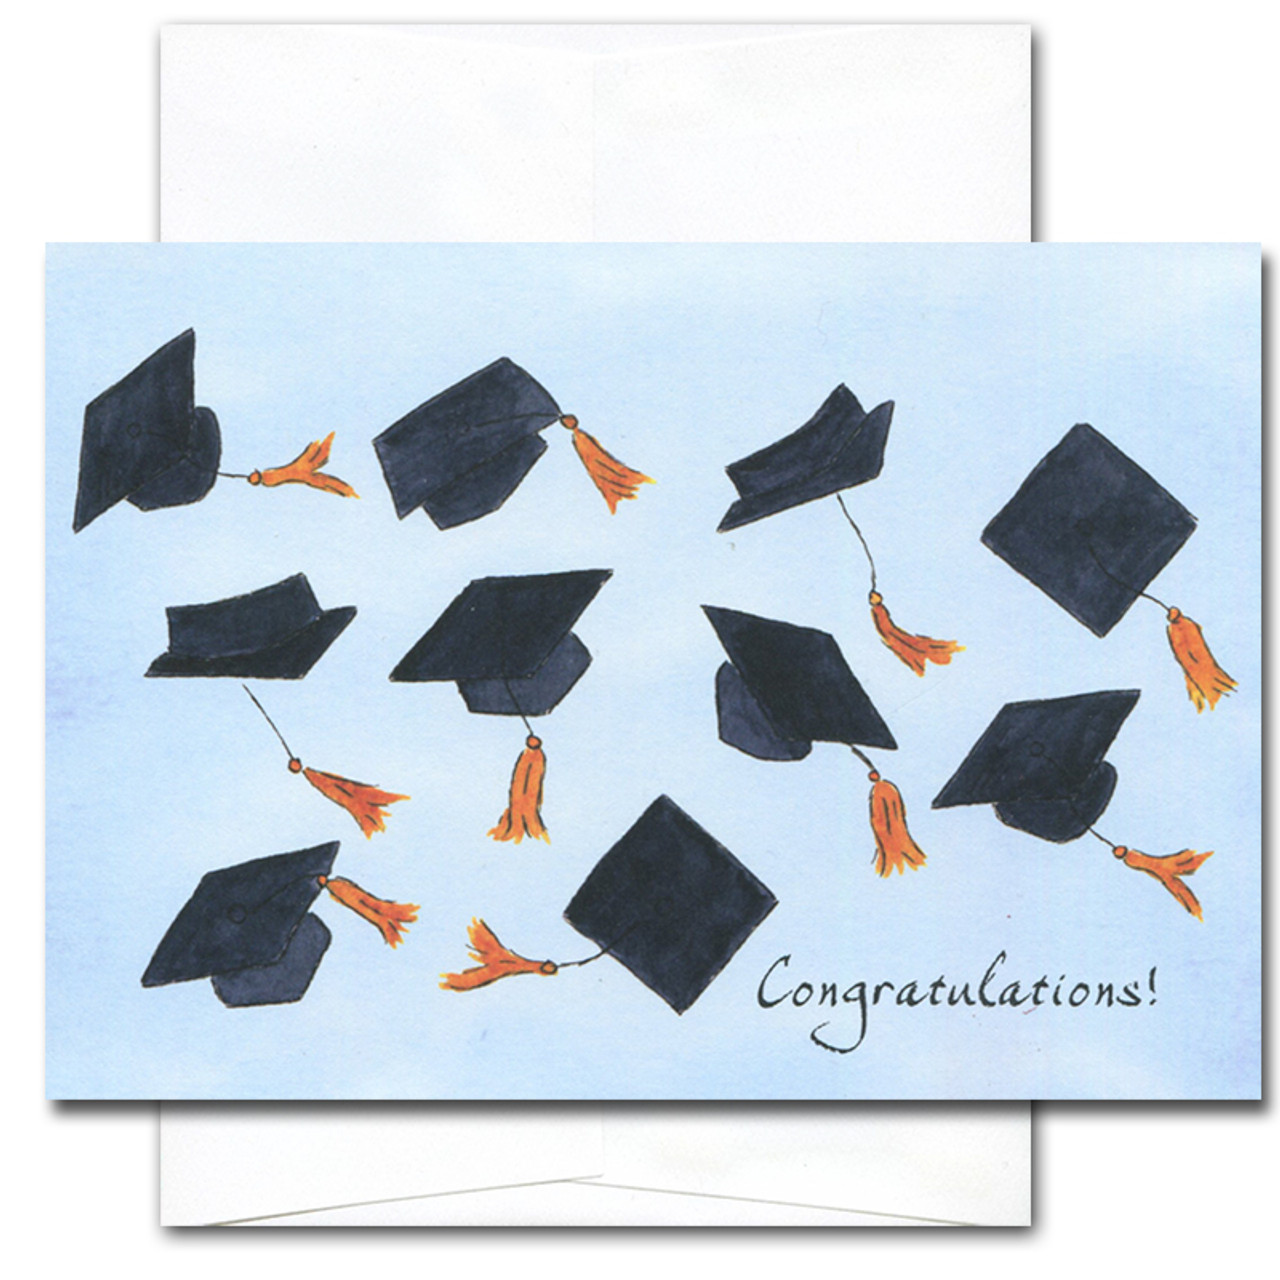 "Graduation Congratulations Card - Airborne cover has illustrations of mortarboard caps flying in the air with the word ""congratulations!"" in the lower right hand corner"